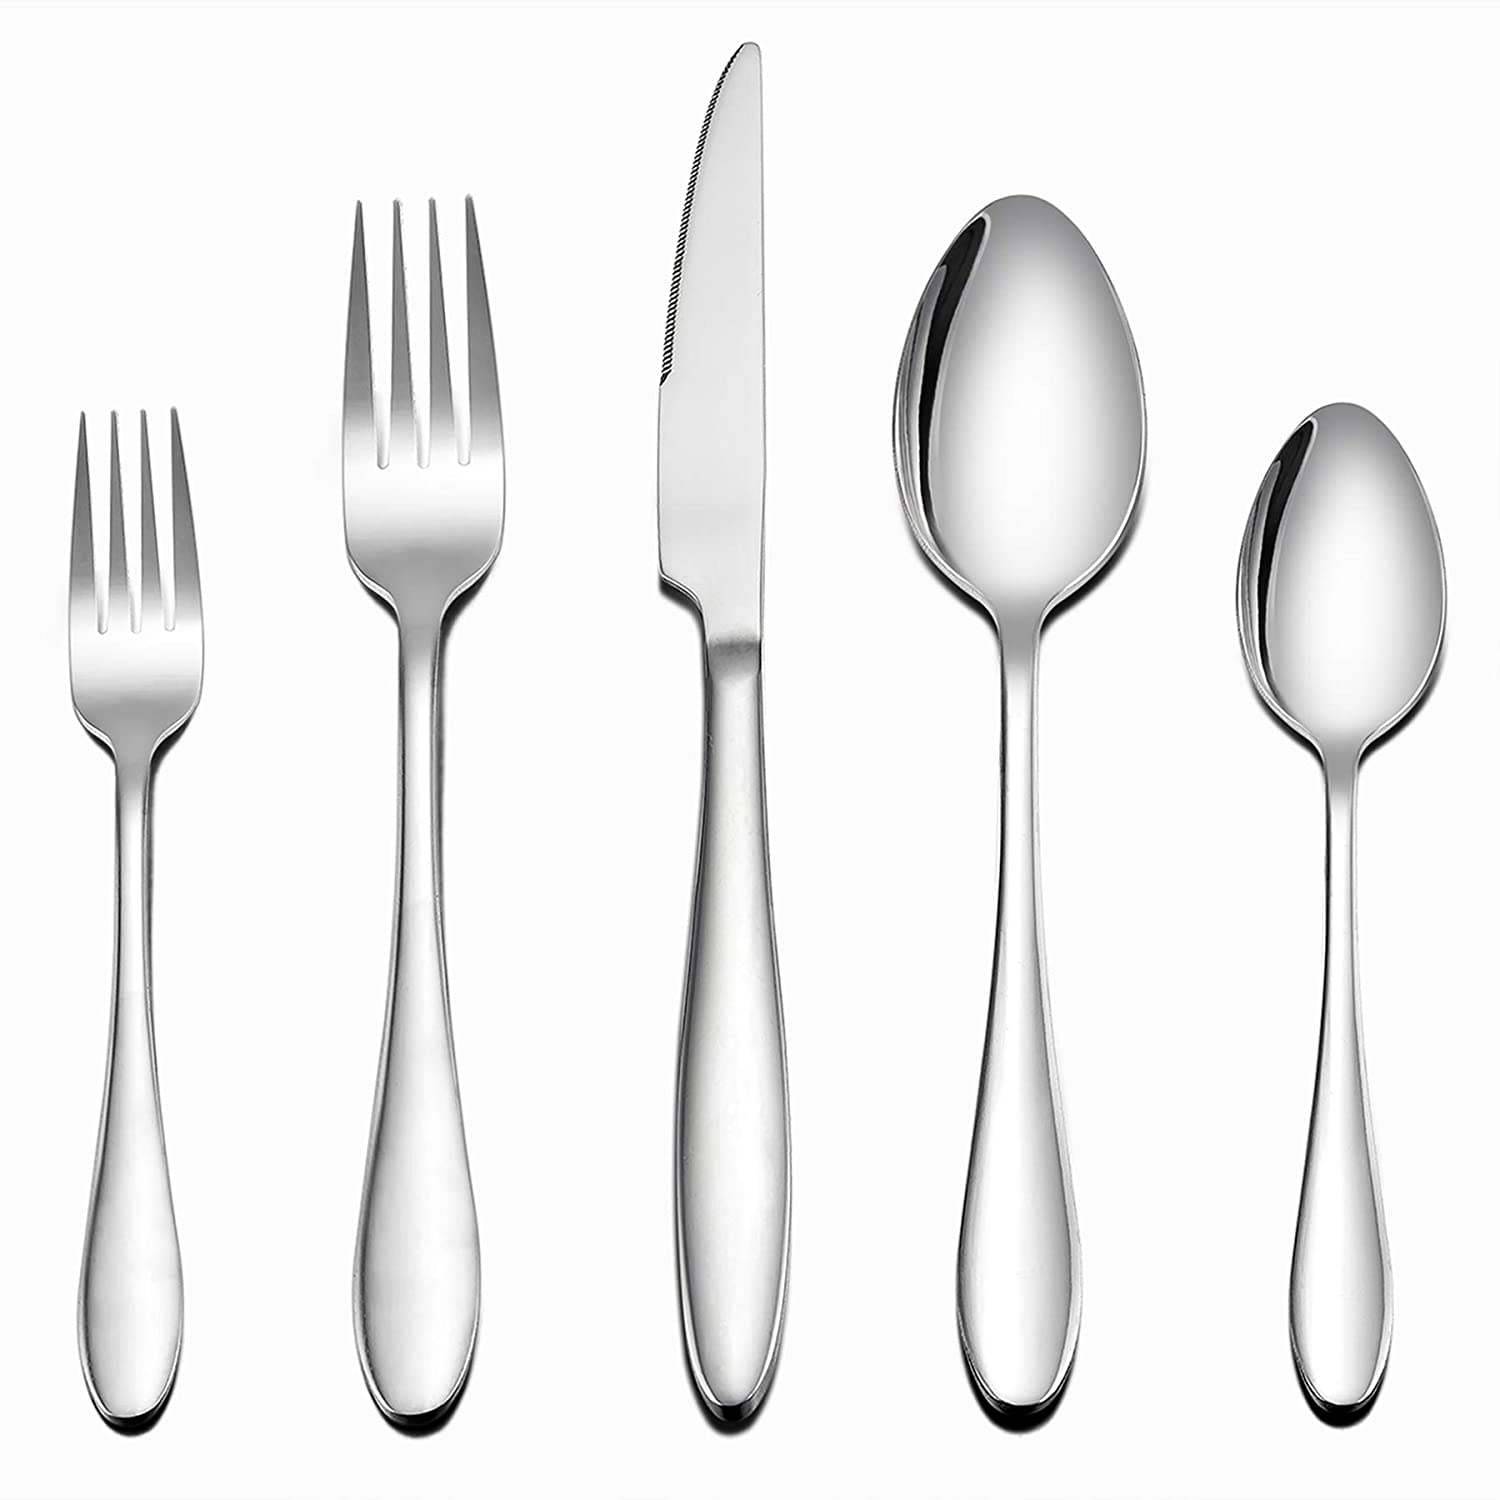 Top 10 Best Silverware Sets